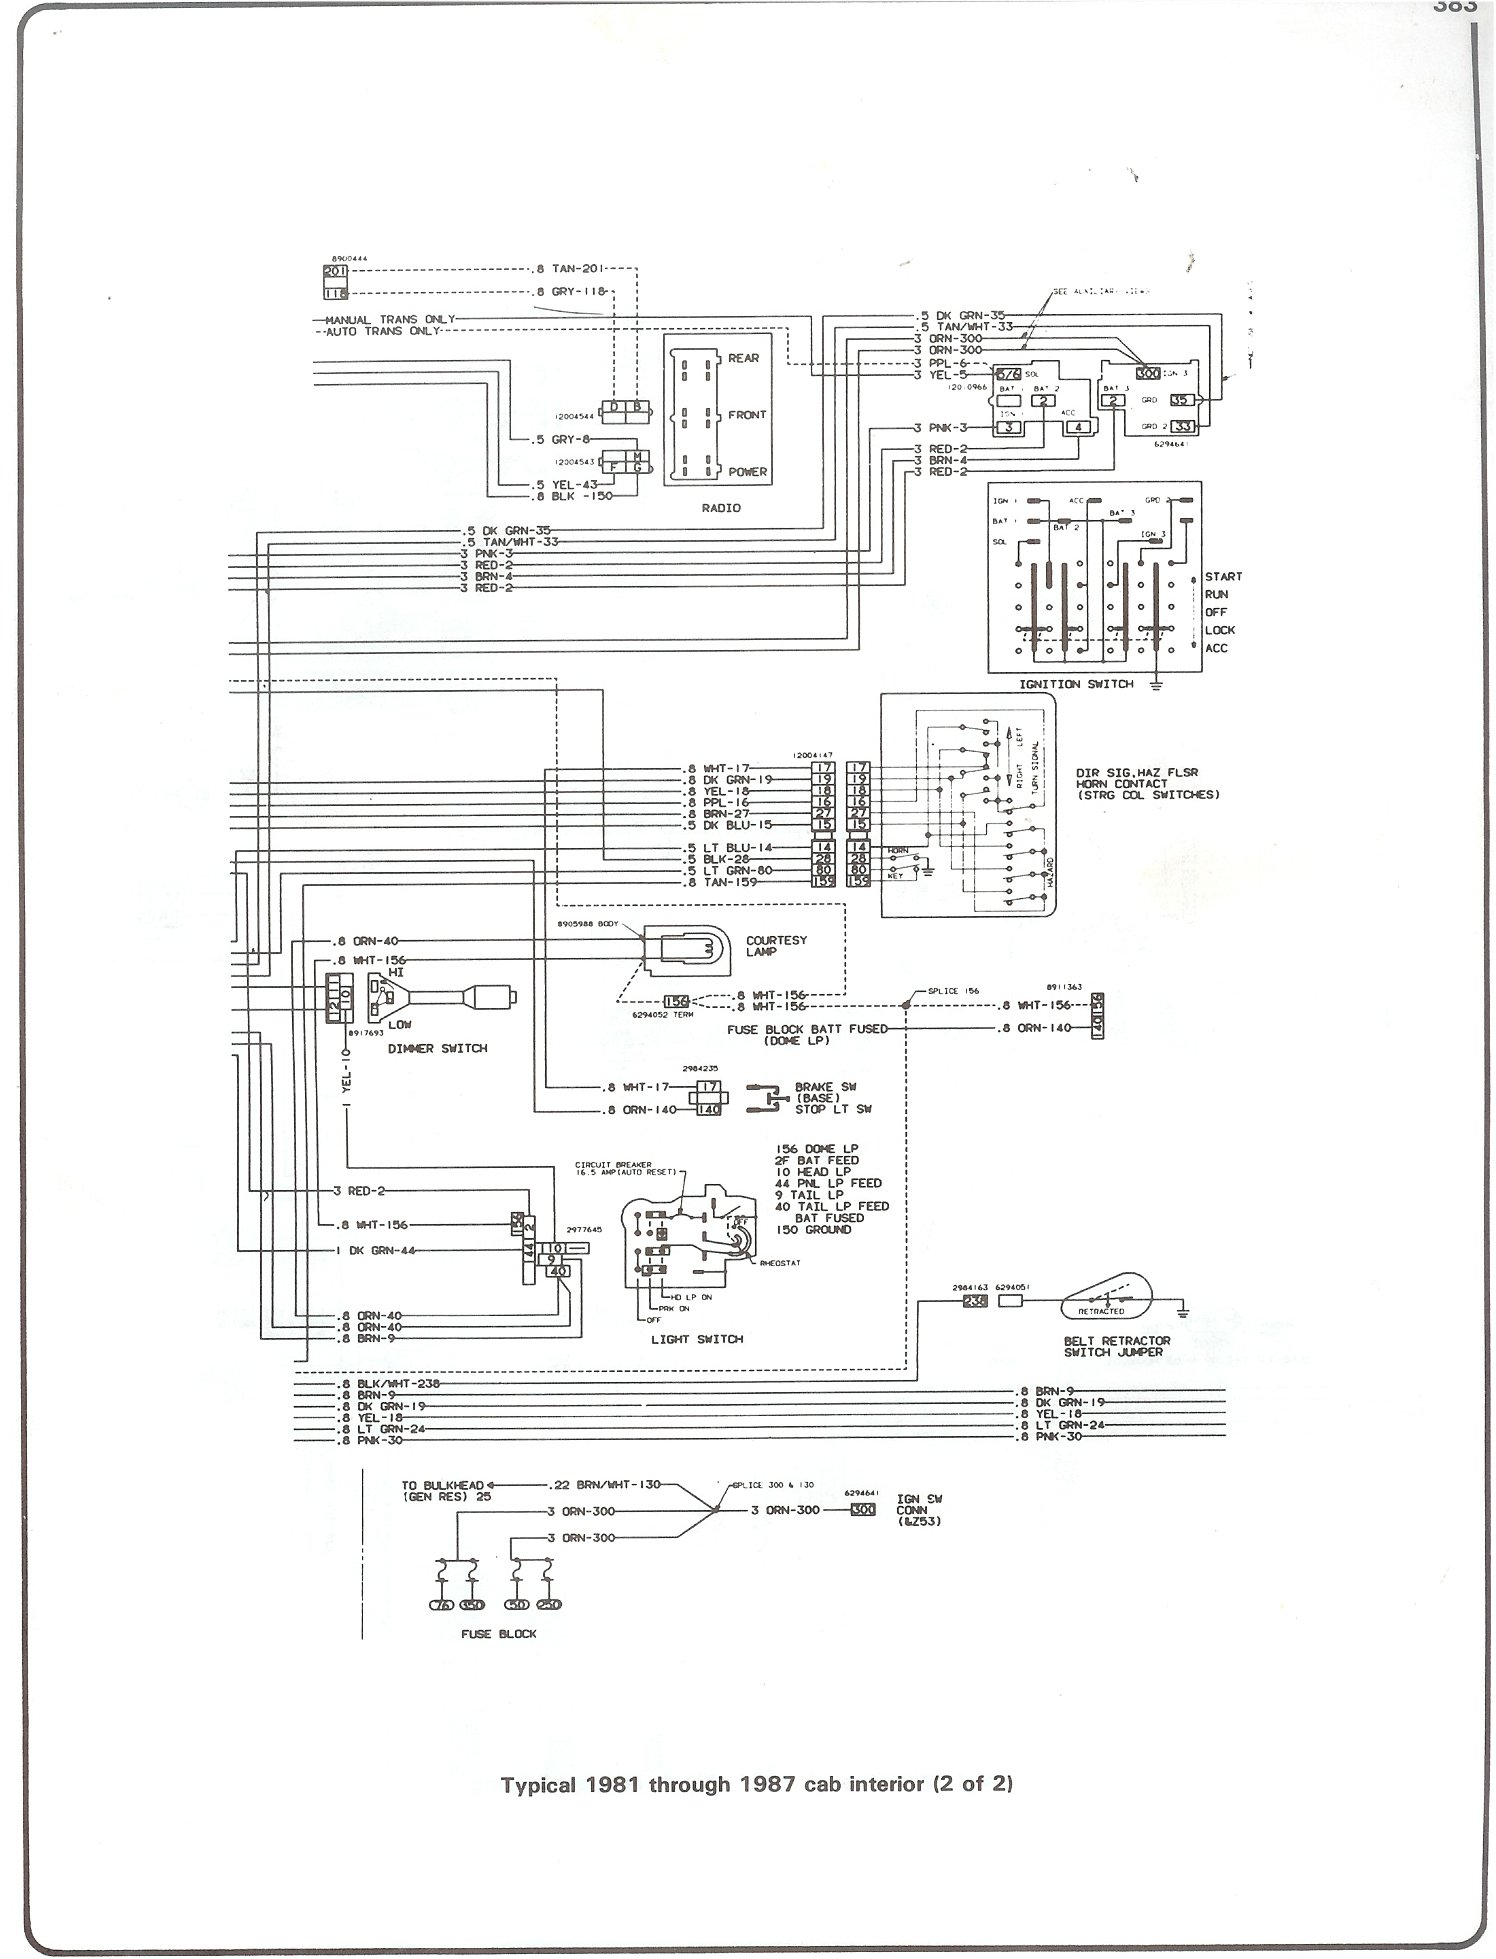 81 87_cab_inter_pg2 complete 73 87 wiring diagrams